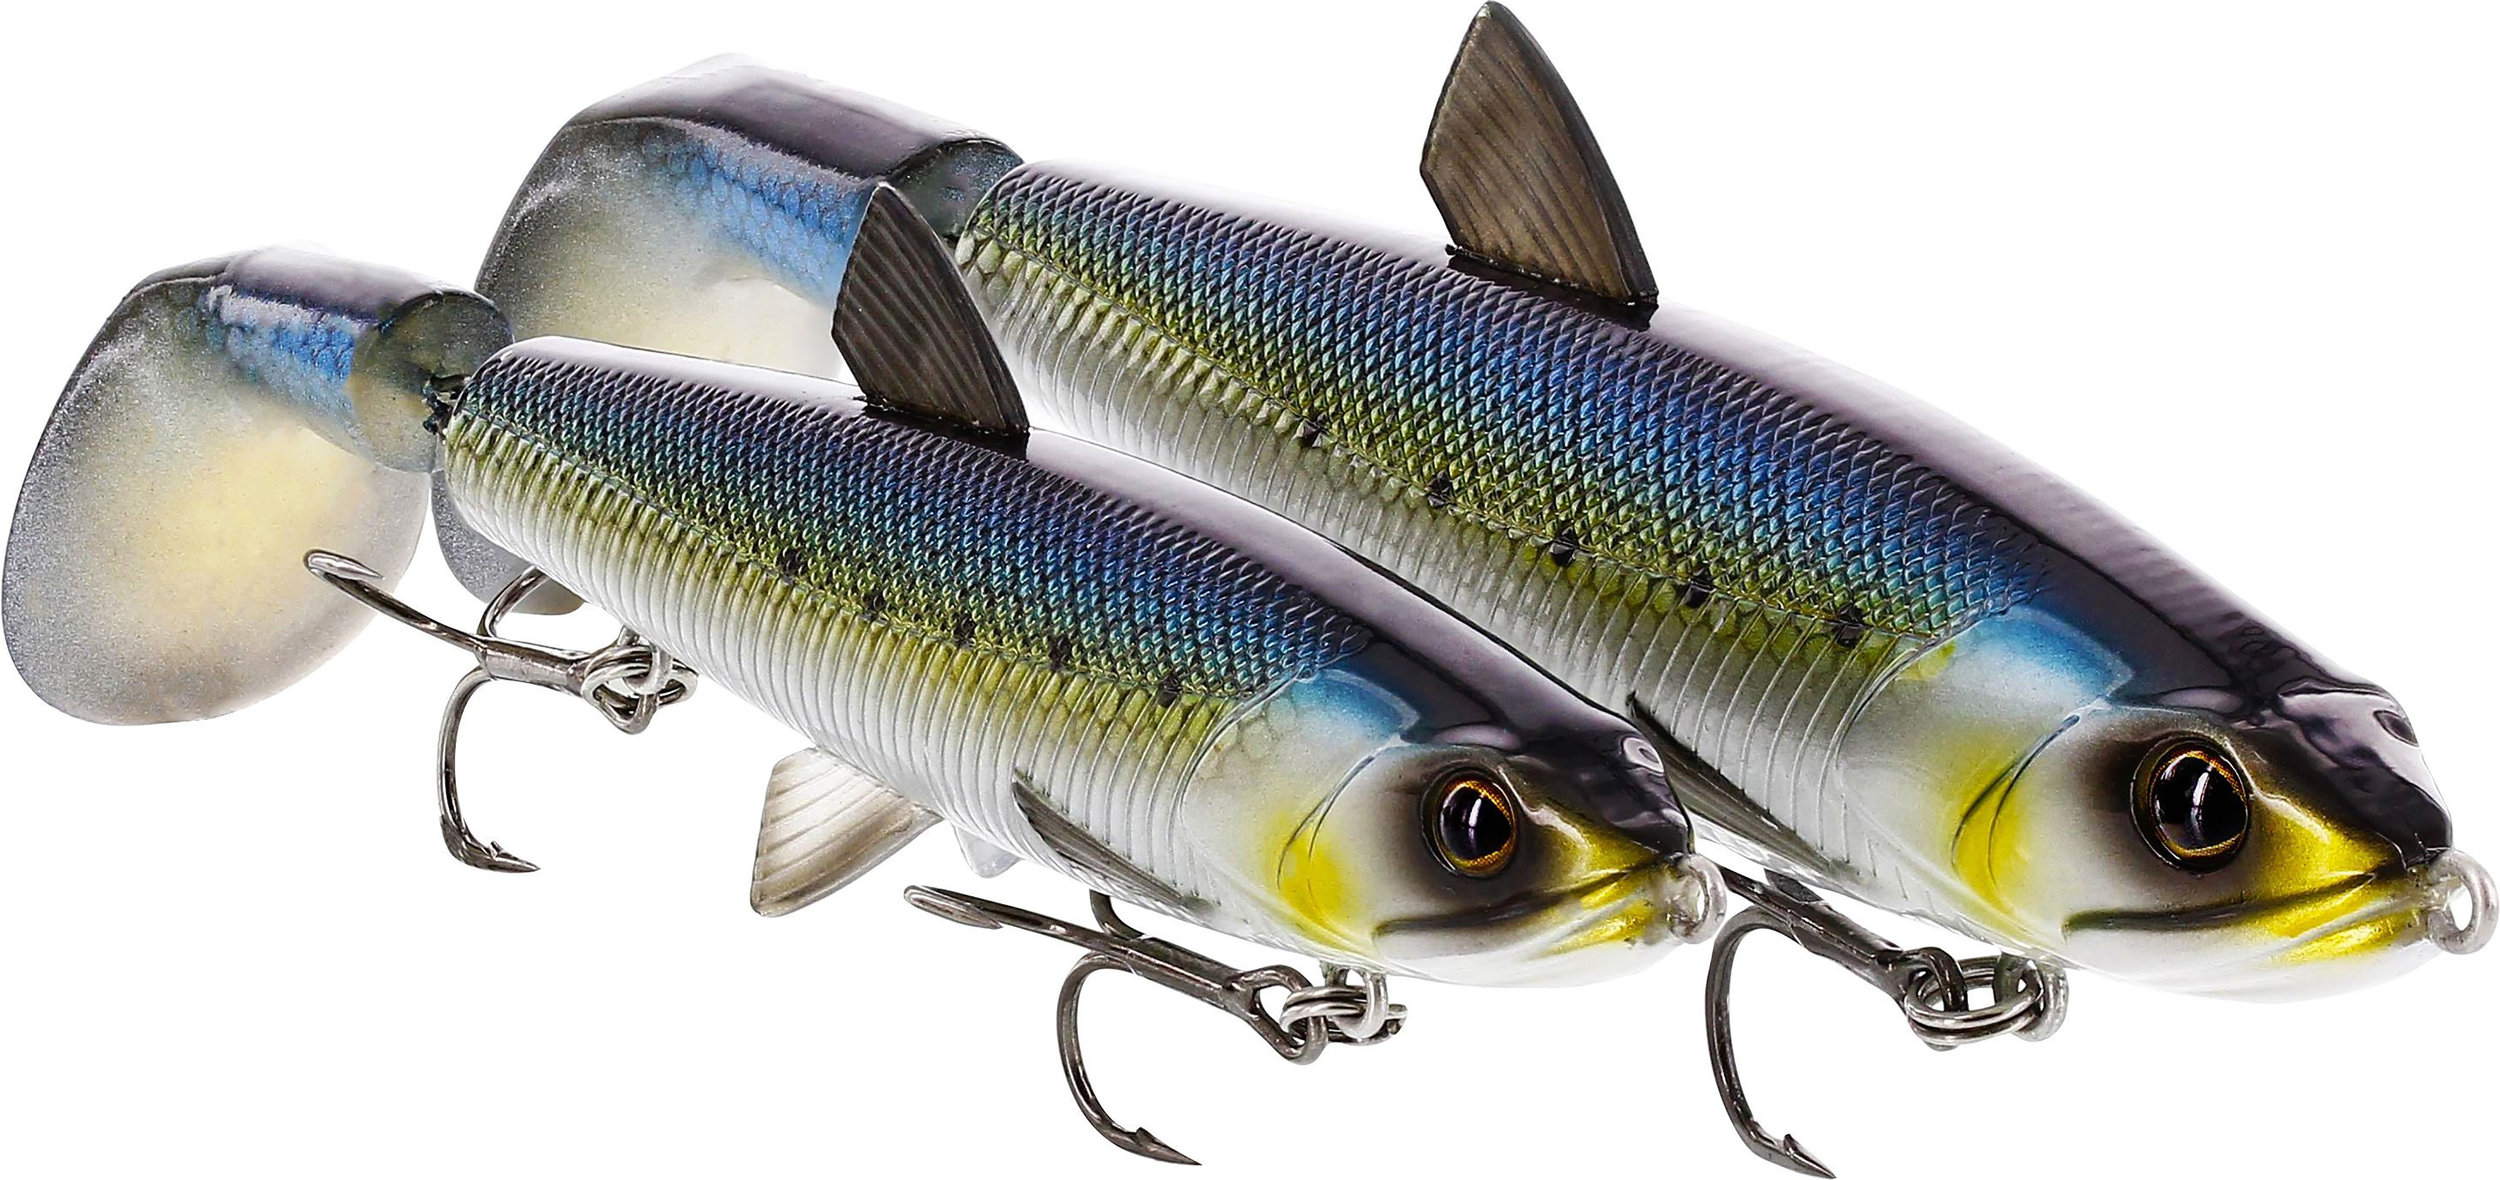 "Booth 1236. Westin HypoTwist. This super realistic topwater bait has a rotating soft tail that wreaks havoc with loud plopping sounds and chaotic surface disturbance on the retrieve. HypoTwist comes in two sizes 4 ½"" and 5 ½"" to suit every situation."